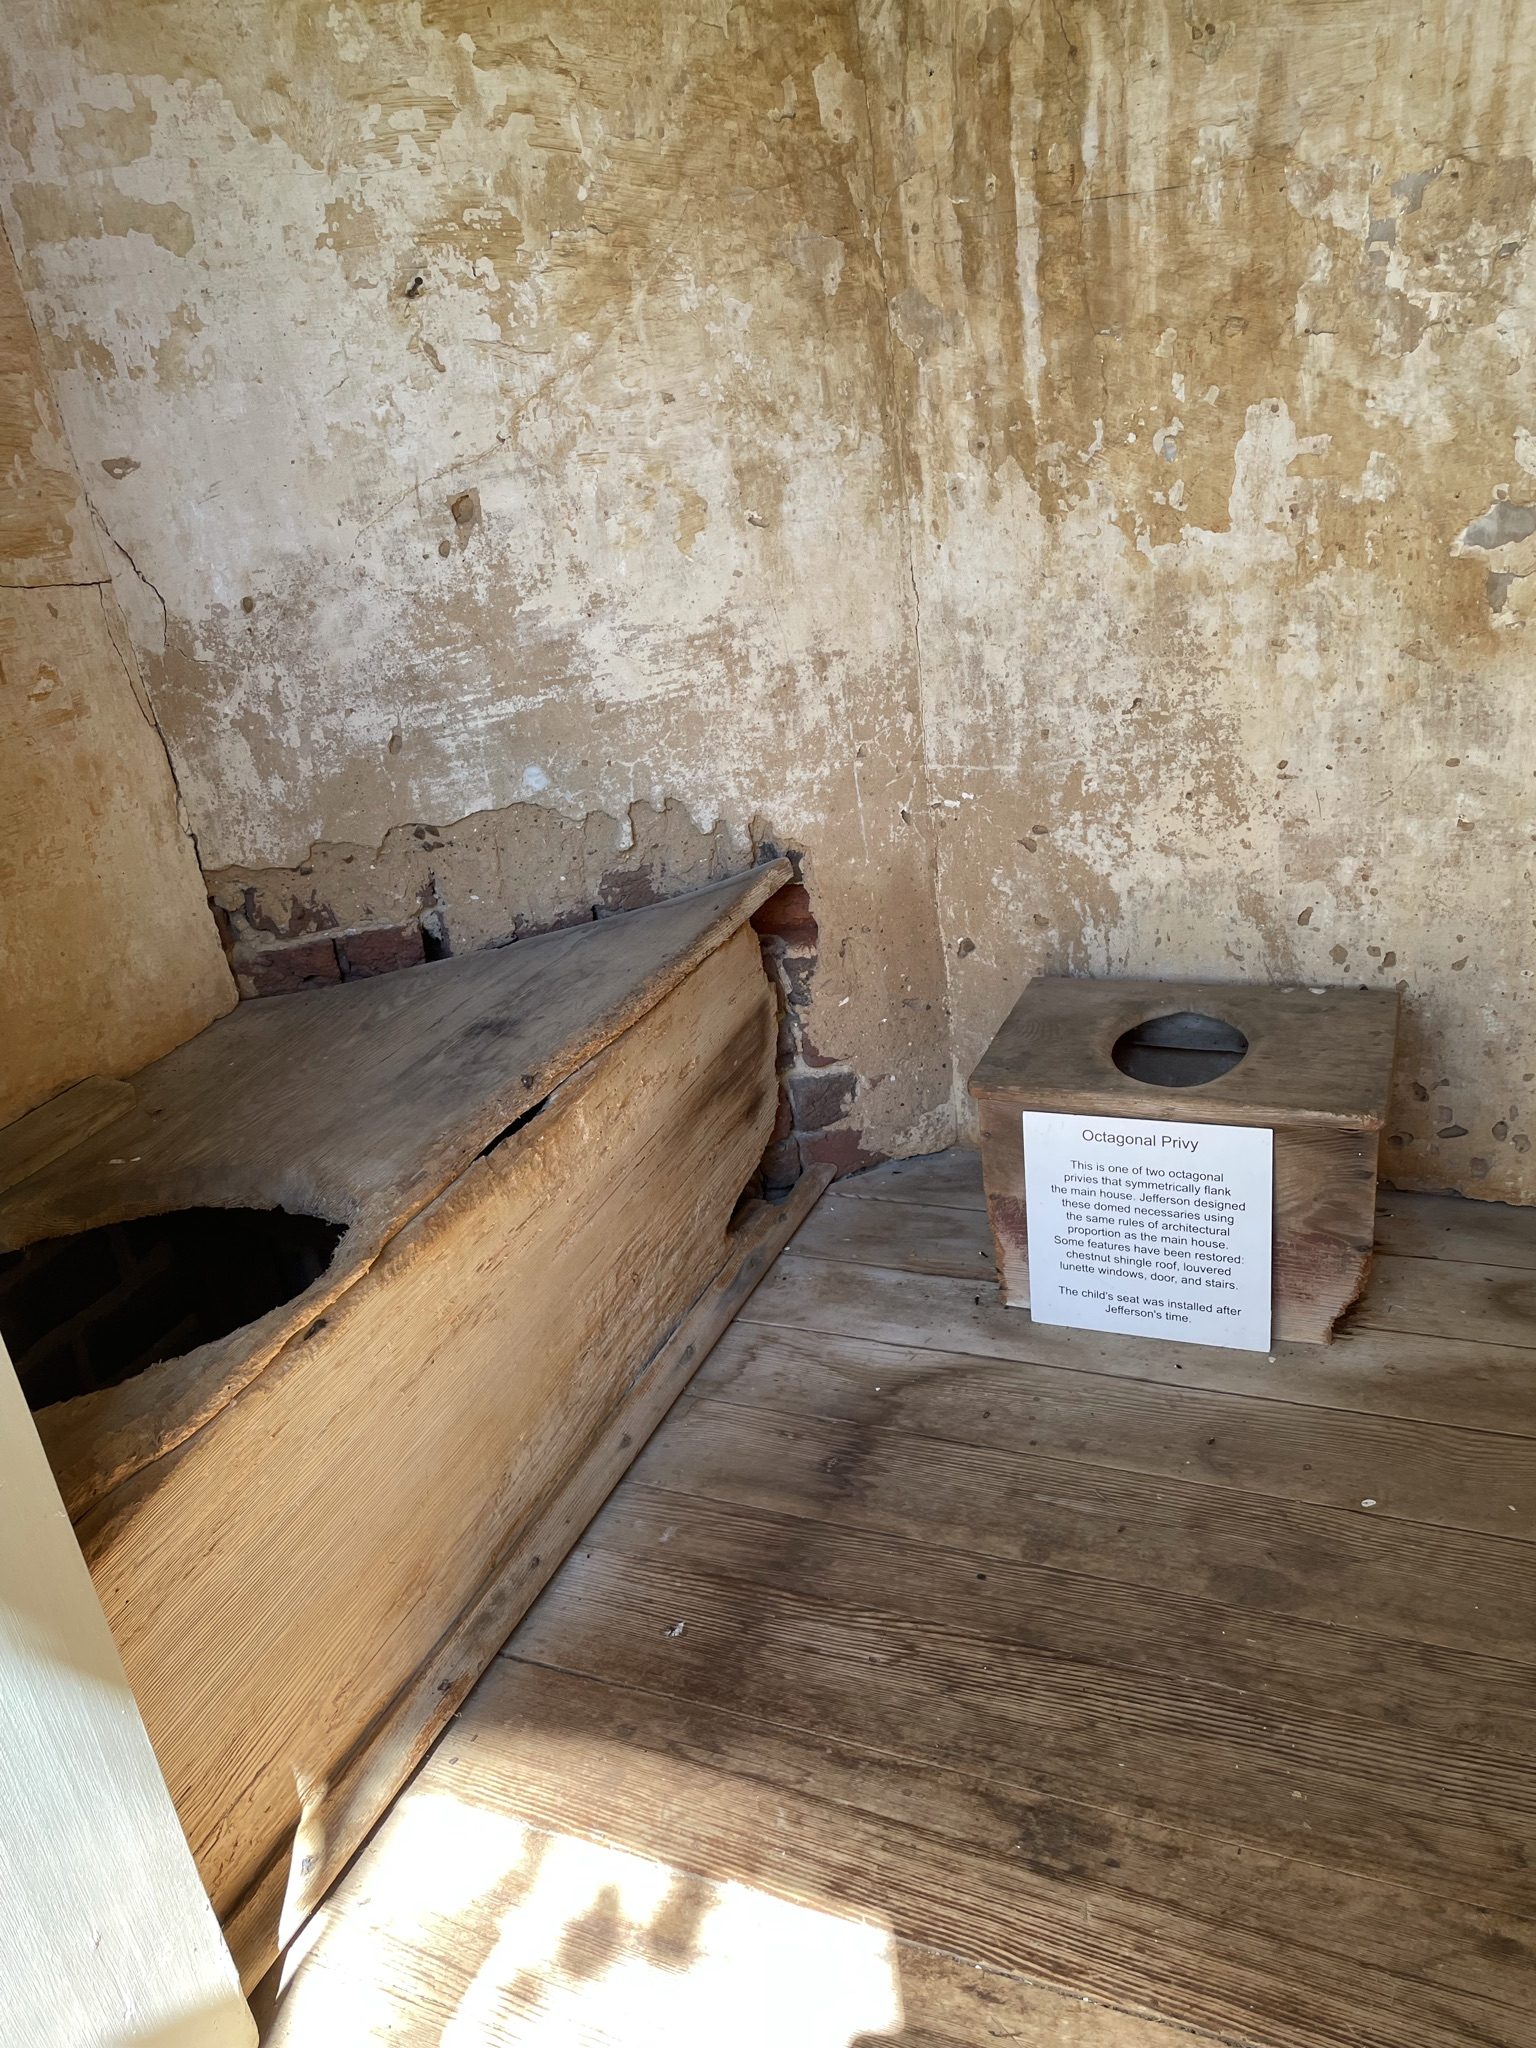 Outdoor Privy at Poplar Forest, summer home of Thomas Jefferson